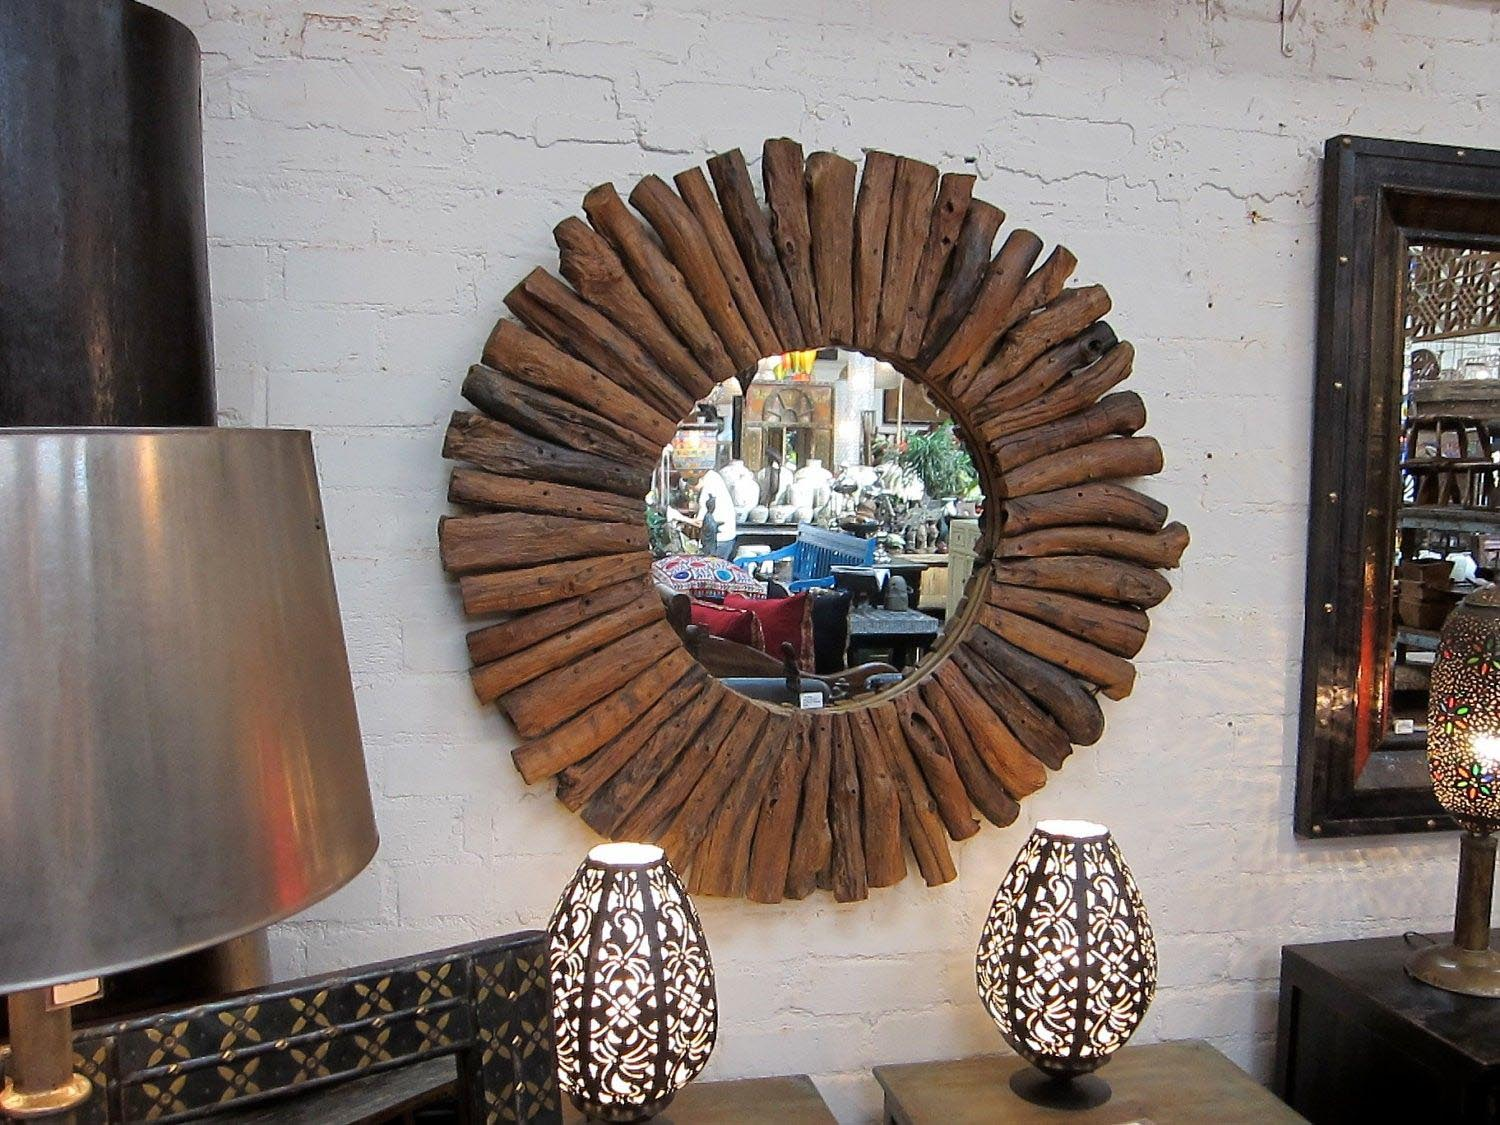 Round Wood Framed Mirrors | Best Decor Things